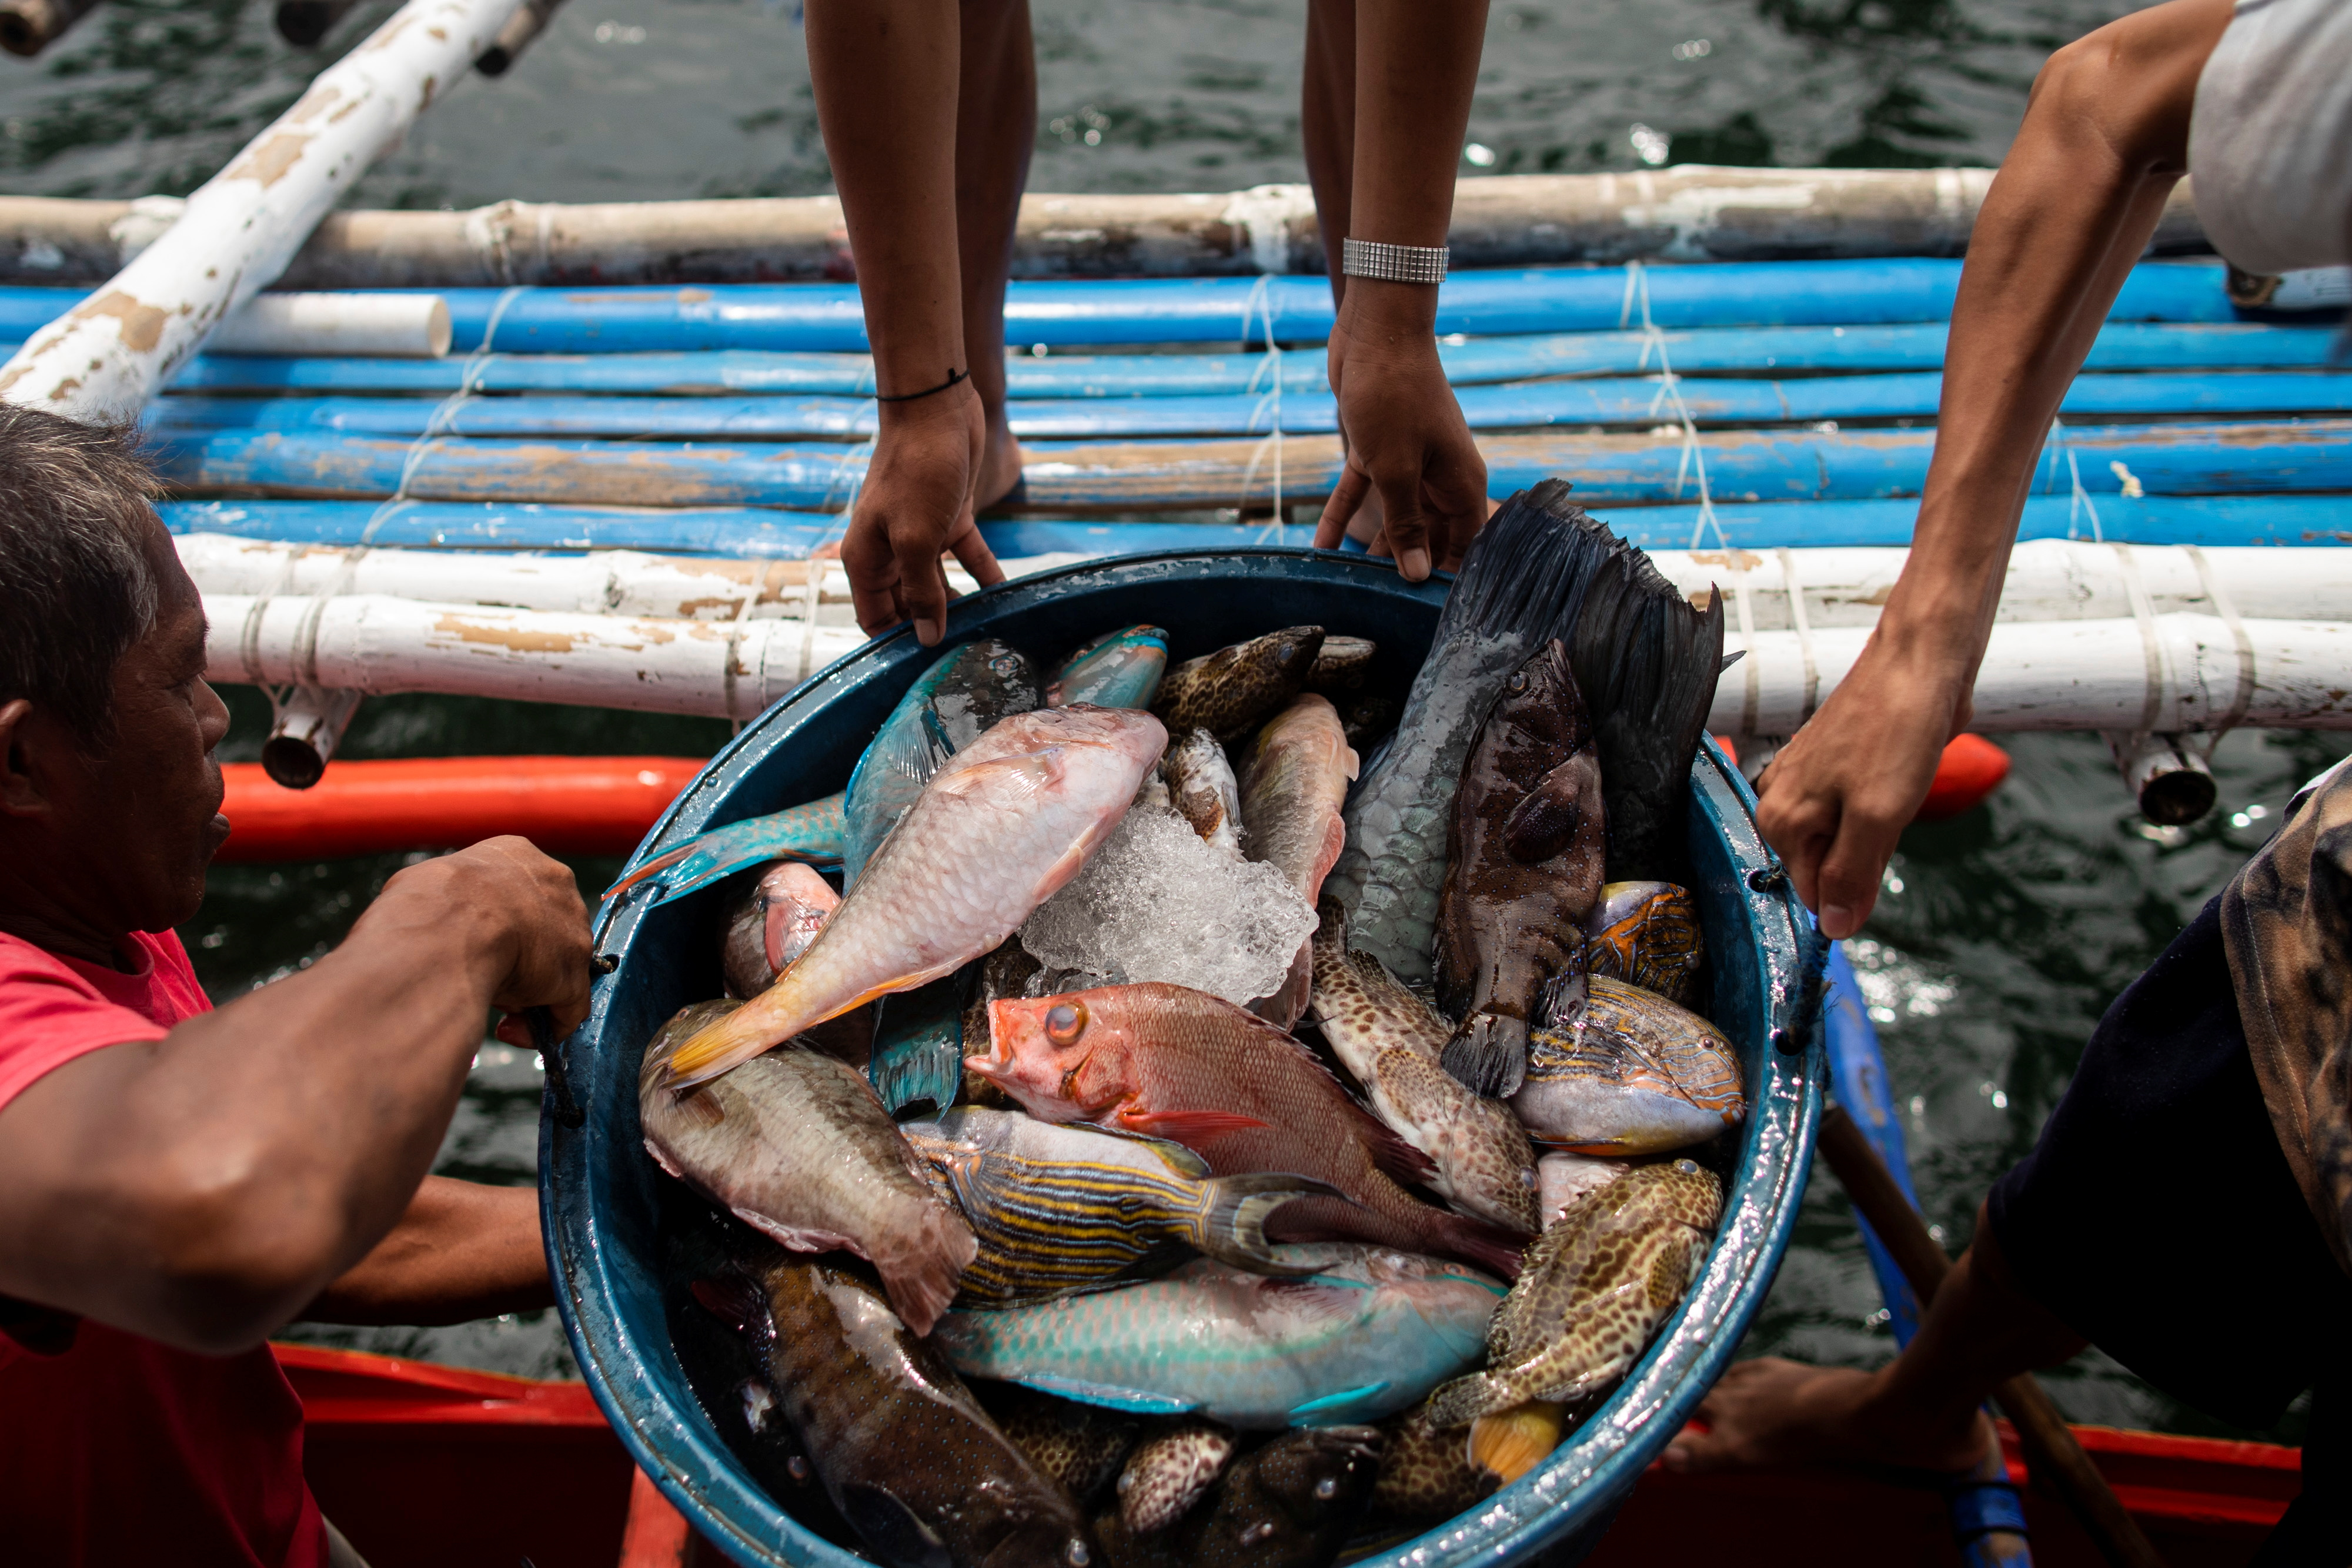 Filipino fishermen unload fish after arriving from a week-long trip to the disputed Scarborough Shoal, in Infanta, Pangasinan province, Philippines, July 6, 2021. Picture taken July 6, 2021. REUTERS/Eloisa Lopez